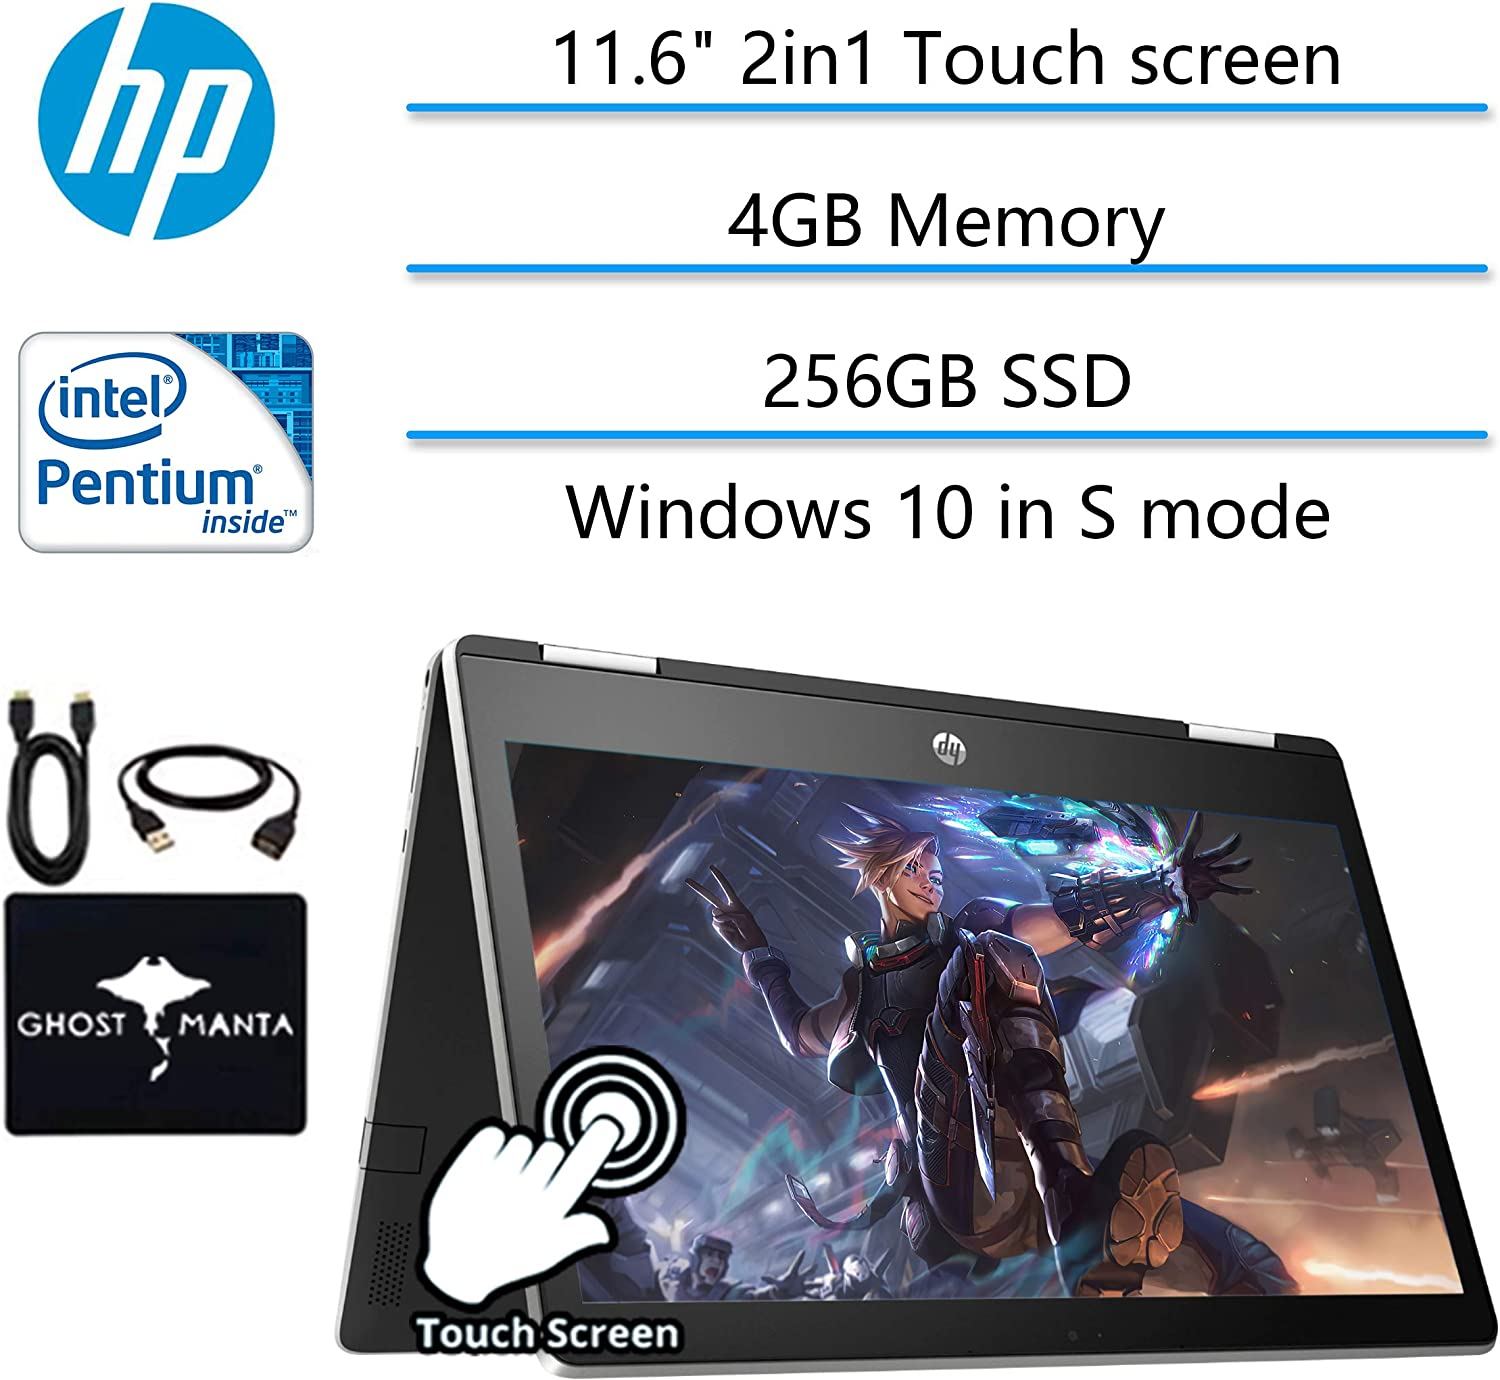 "2020 Newest HP Pavilion x360 2in1 11.6"" Touch-Screen Laptop for Business and Student, Intel Pentium N5000 4-core, 4GB Memory, 256GB SSD, USB Type A&C, Webcam, WiFi, HDMI, Win10, w/GM Accessories"